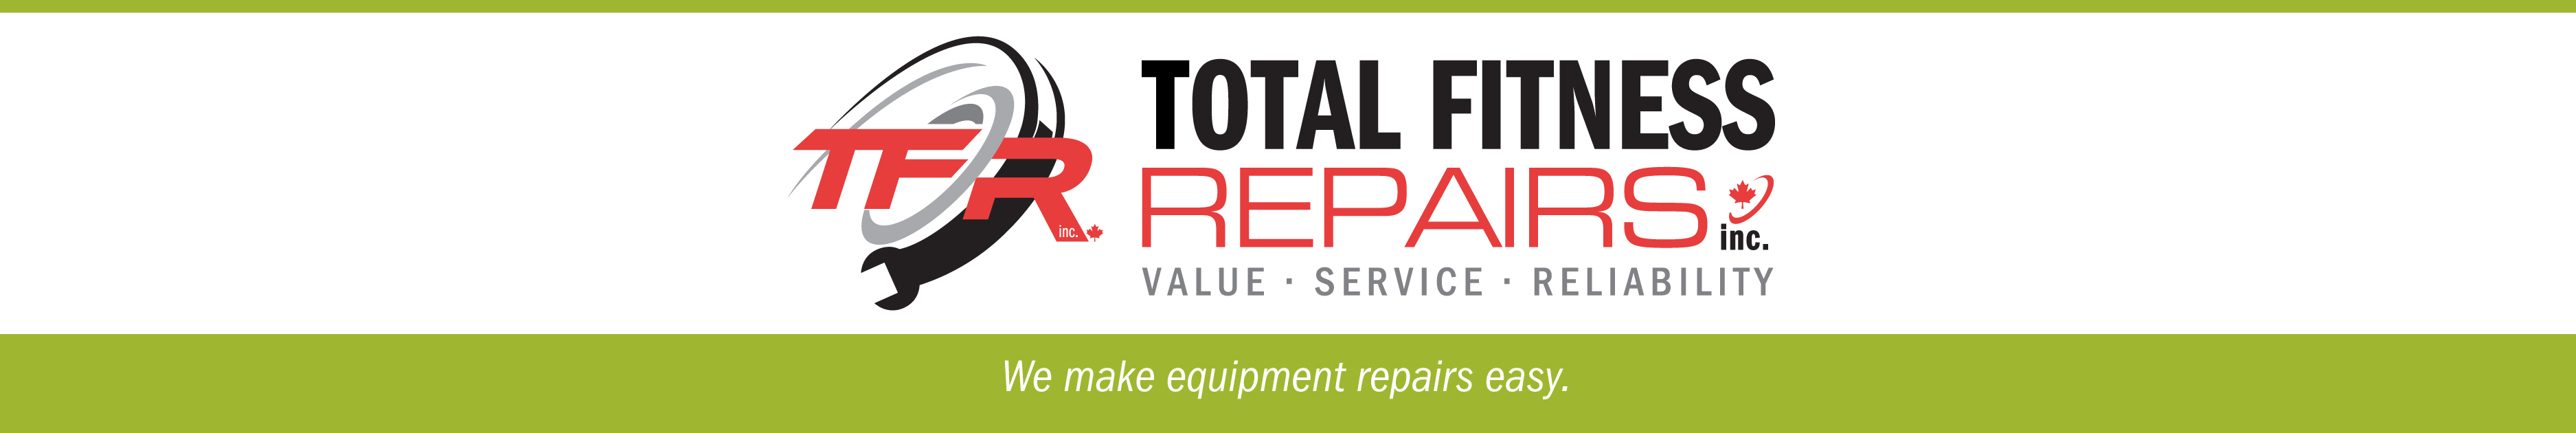 Total Fitness Repairs, Inc.